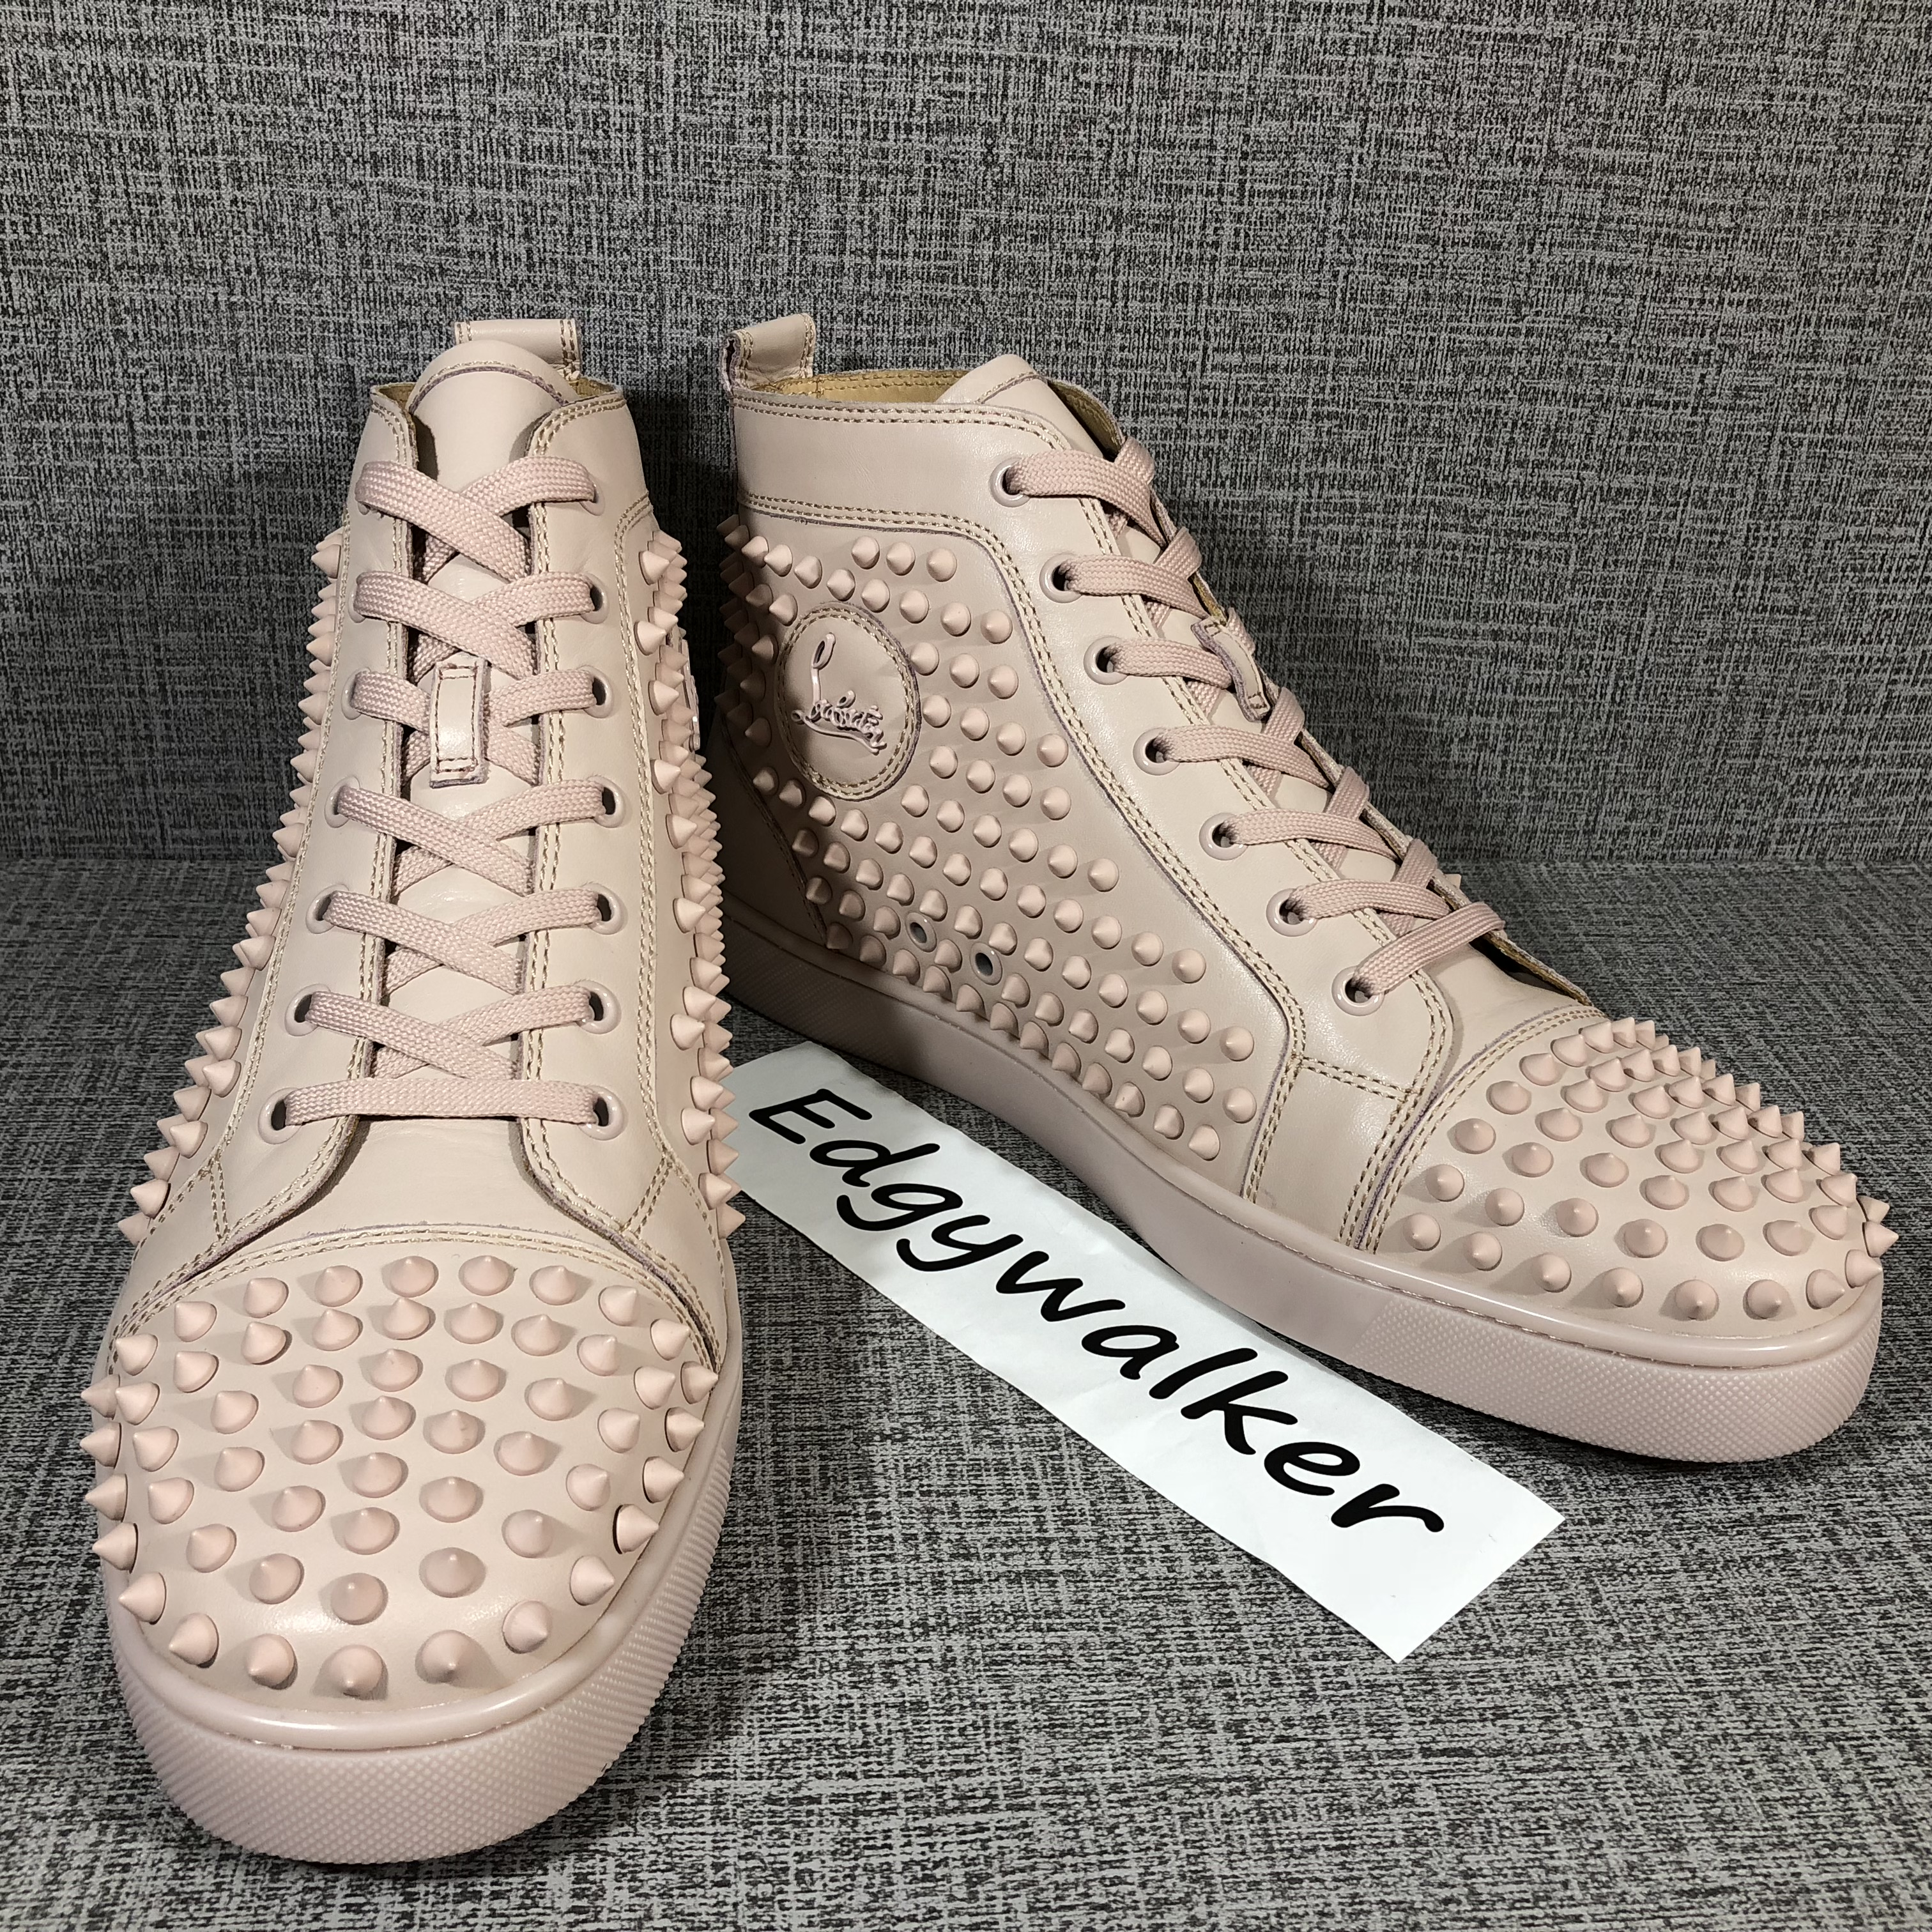 b3a1a34929c CLSKH92 Louboutin Louis pink spikes pink Leather High-top Sneaker Item NO   CLSKH92